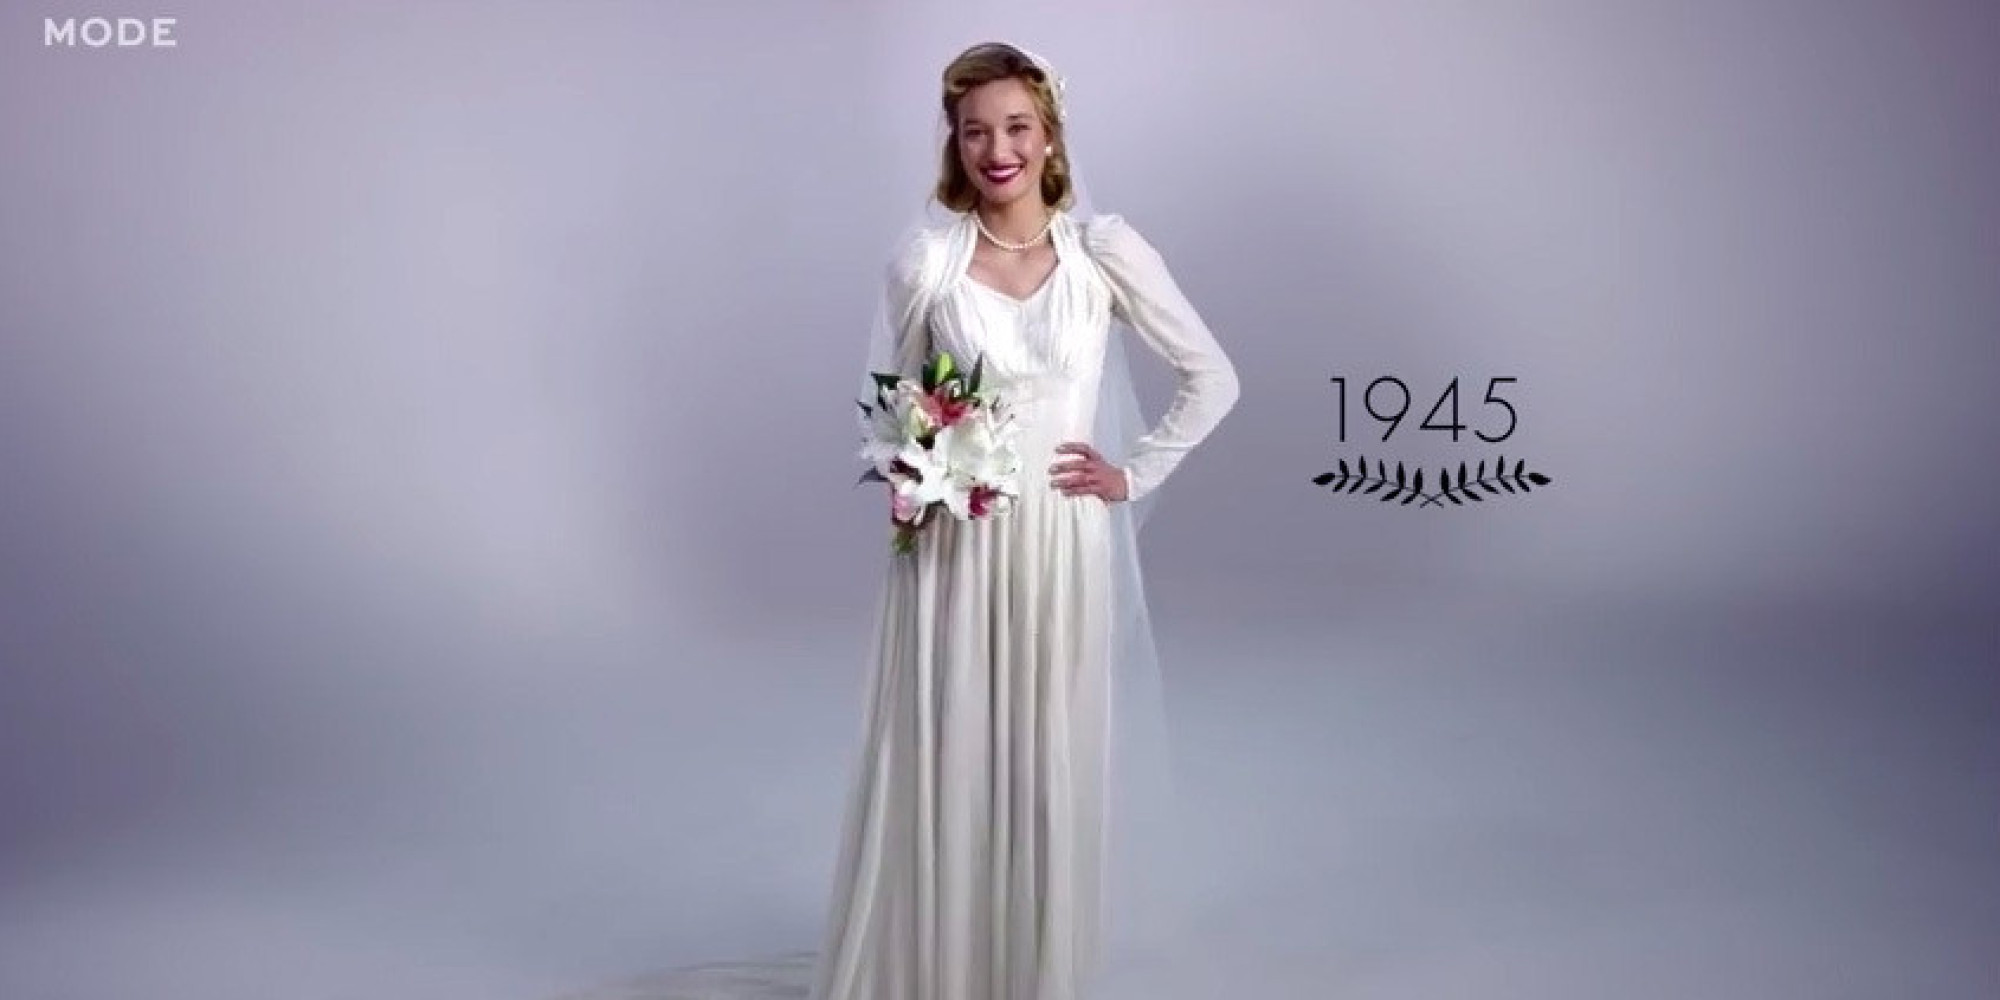 Wedding Dresses For 40: WATCH: 100 Years Of Wedding Dresses In Under 3 Minutes